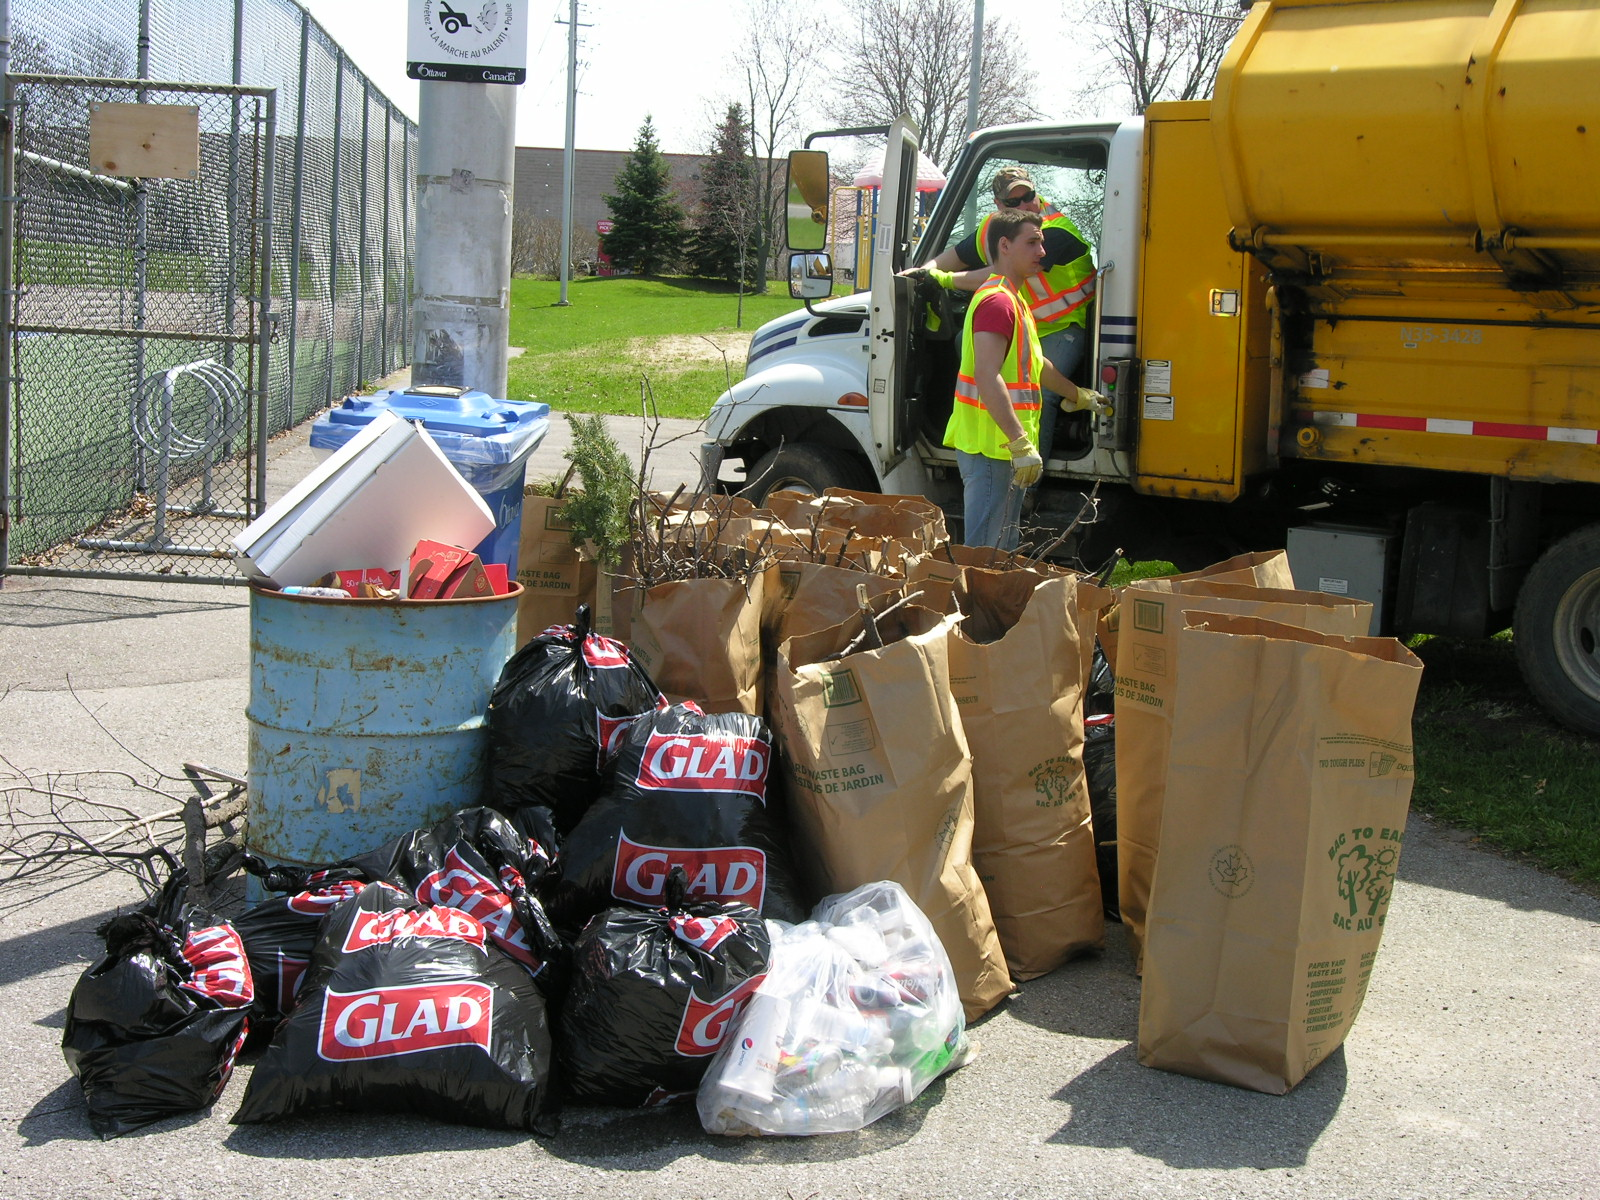 May 7th - Litter, branches, leaves picked up by students from Redeemer High School (morning shift).  Thank you Danilo Orozco for organizing the clean-up.